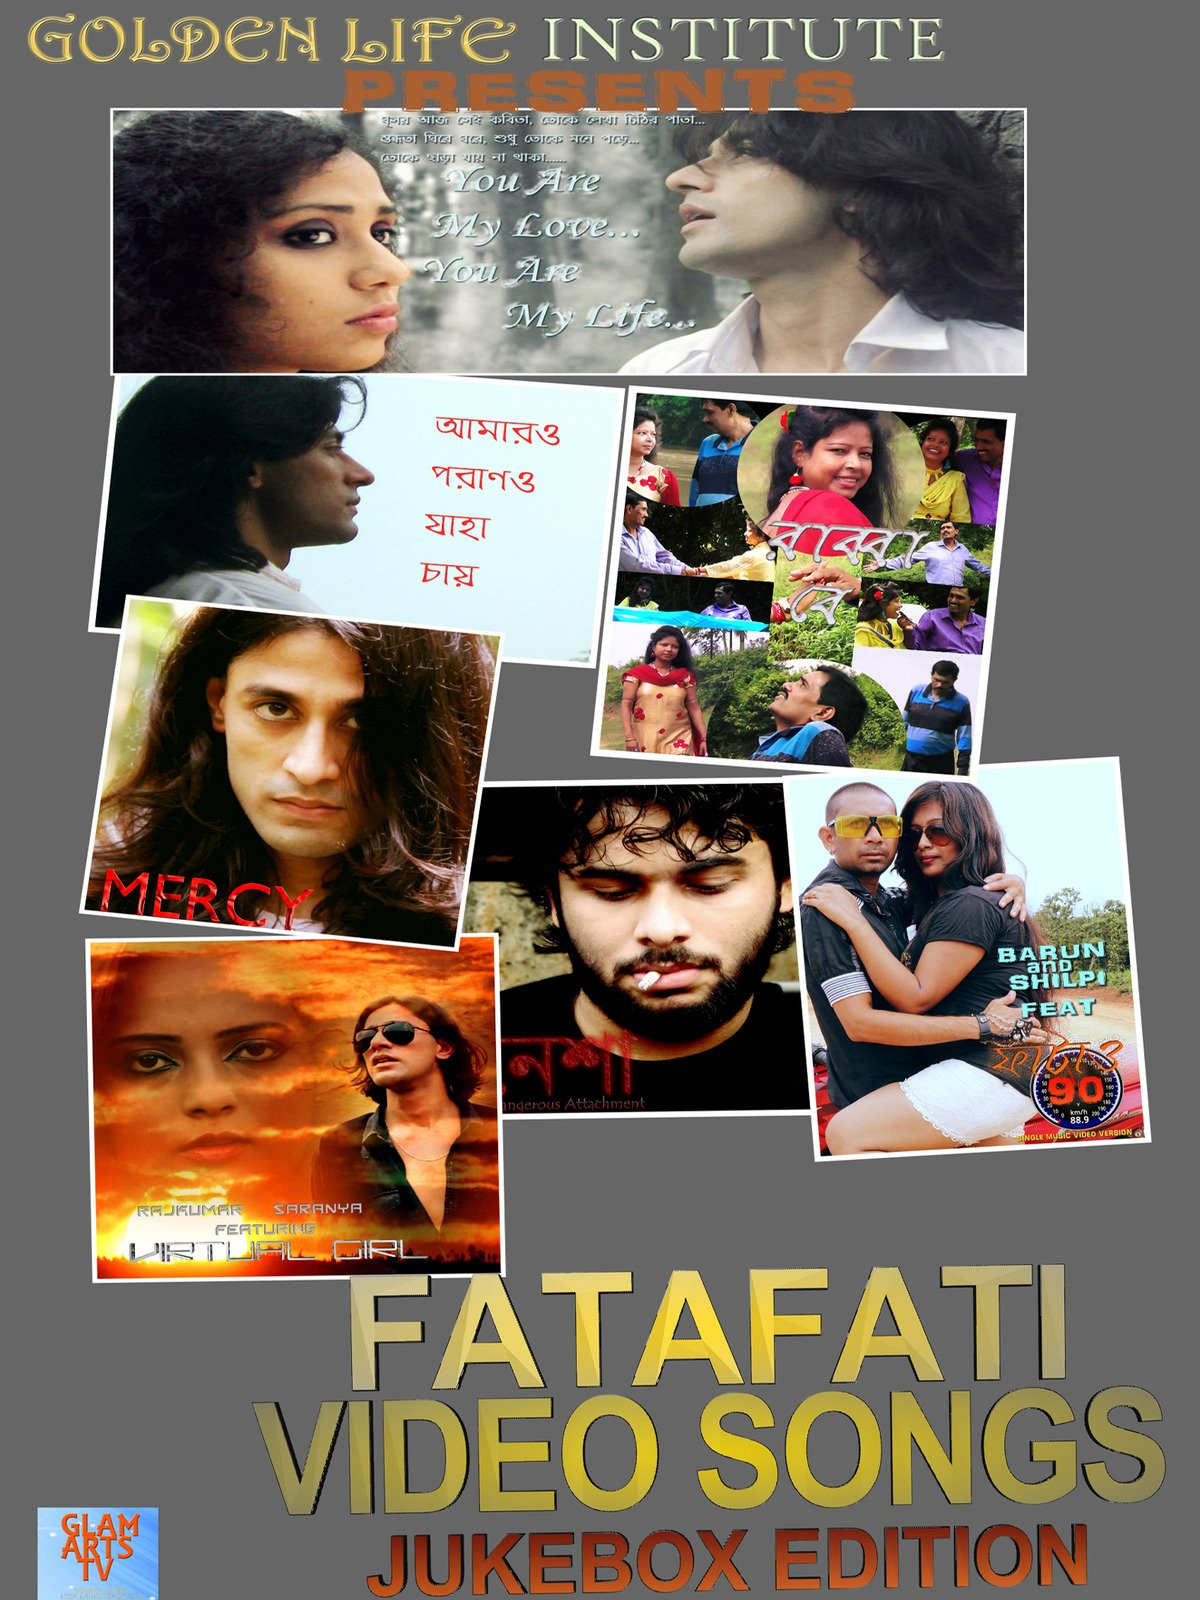 Fatafati Video Songs